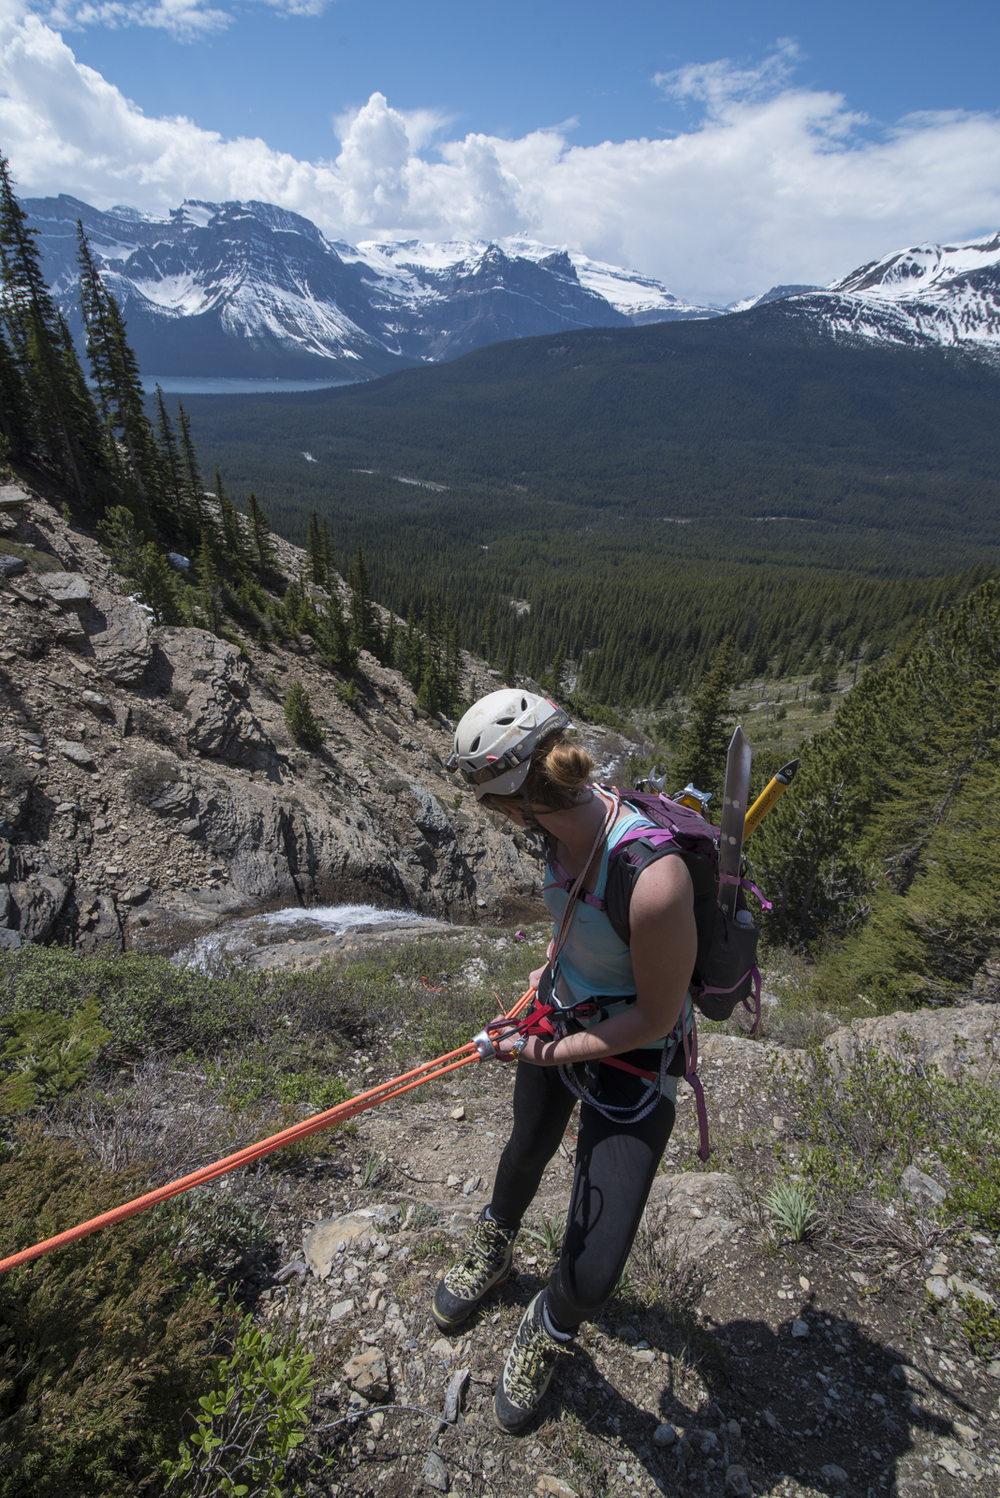 Megan repelling off Mount Hector in Banff National Park, Alberta, Canada.